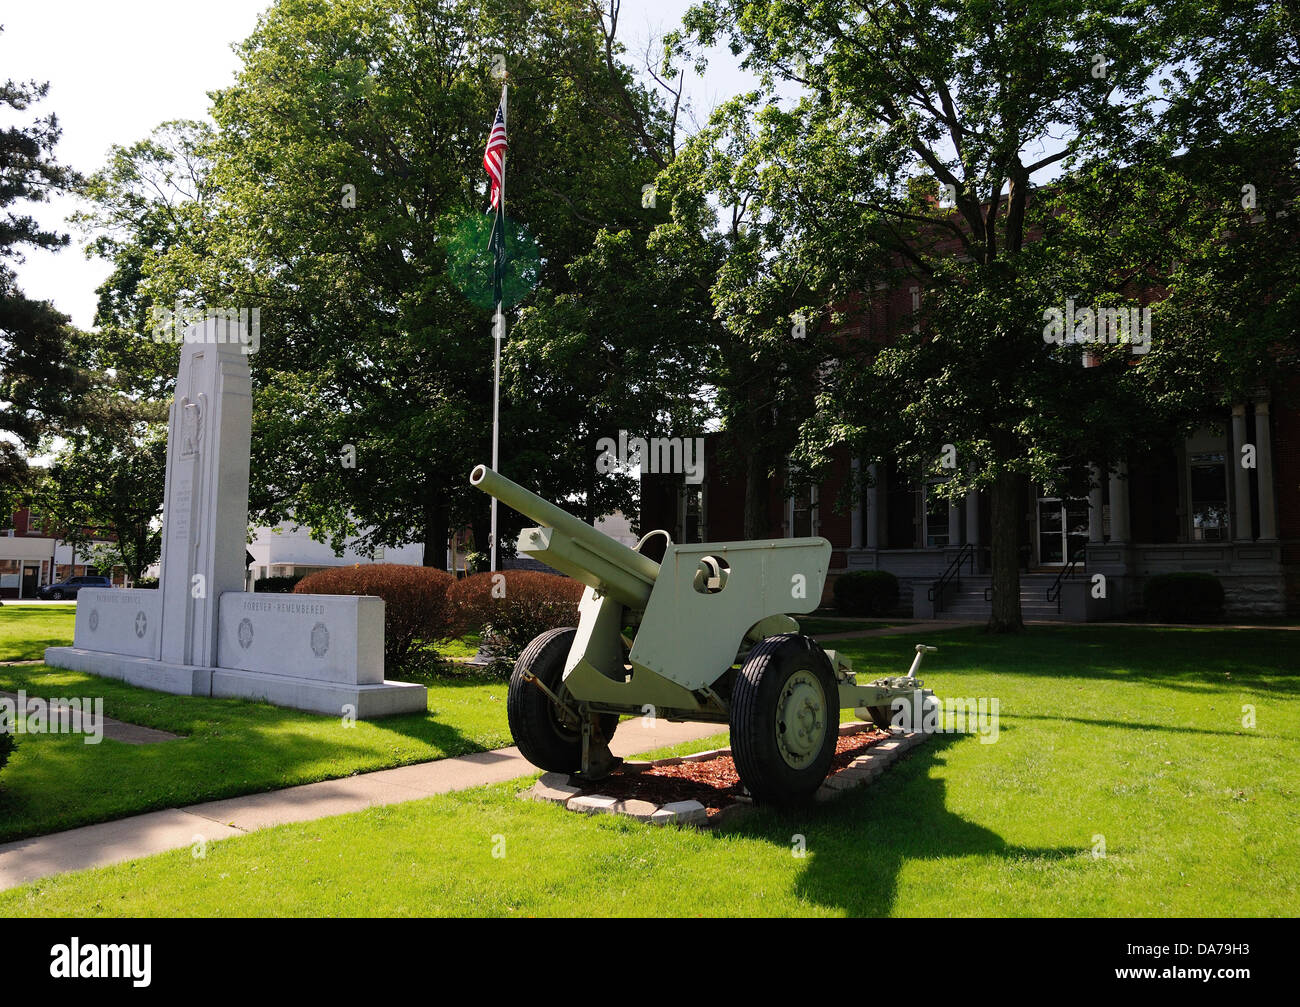 Veterans War memorial at Jasper County Illinois, USA - Stock Image